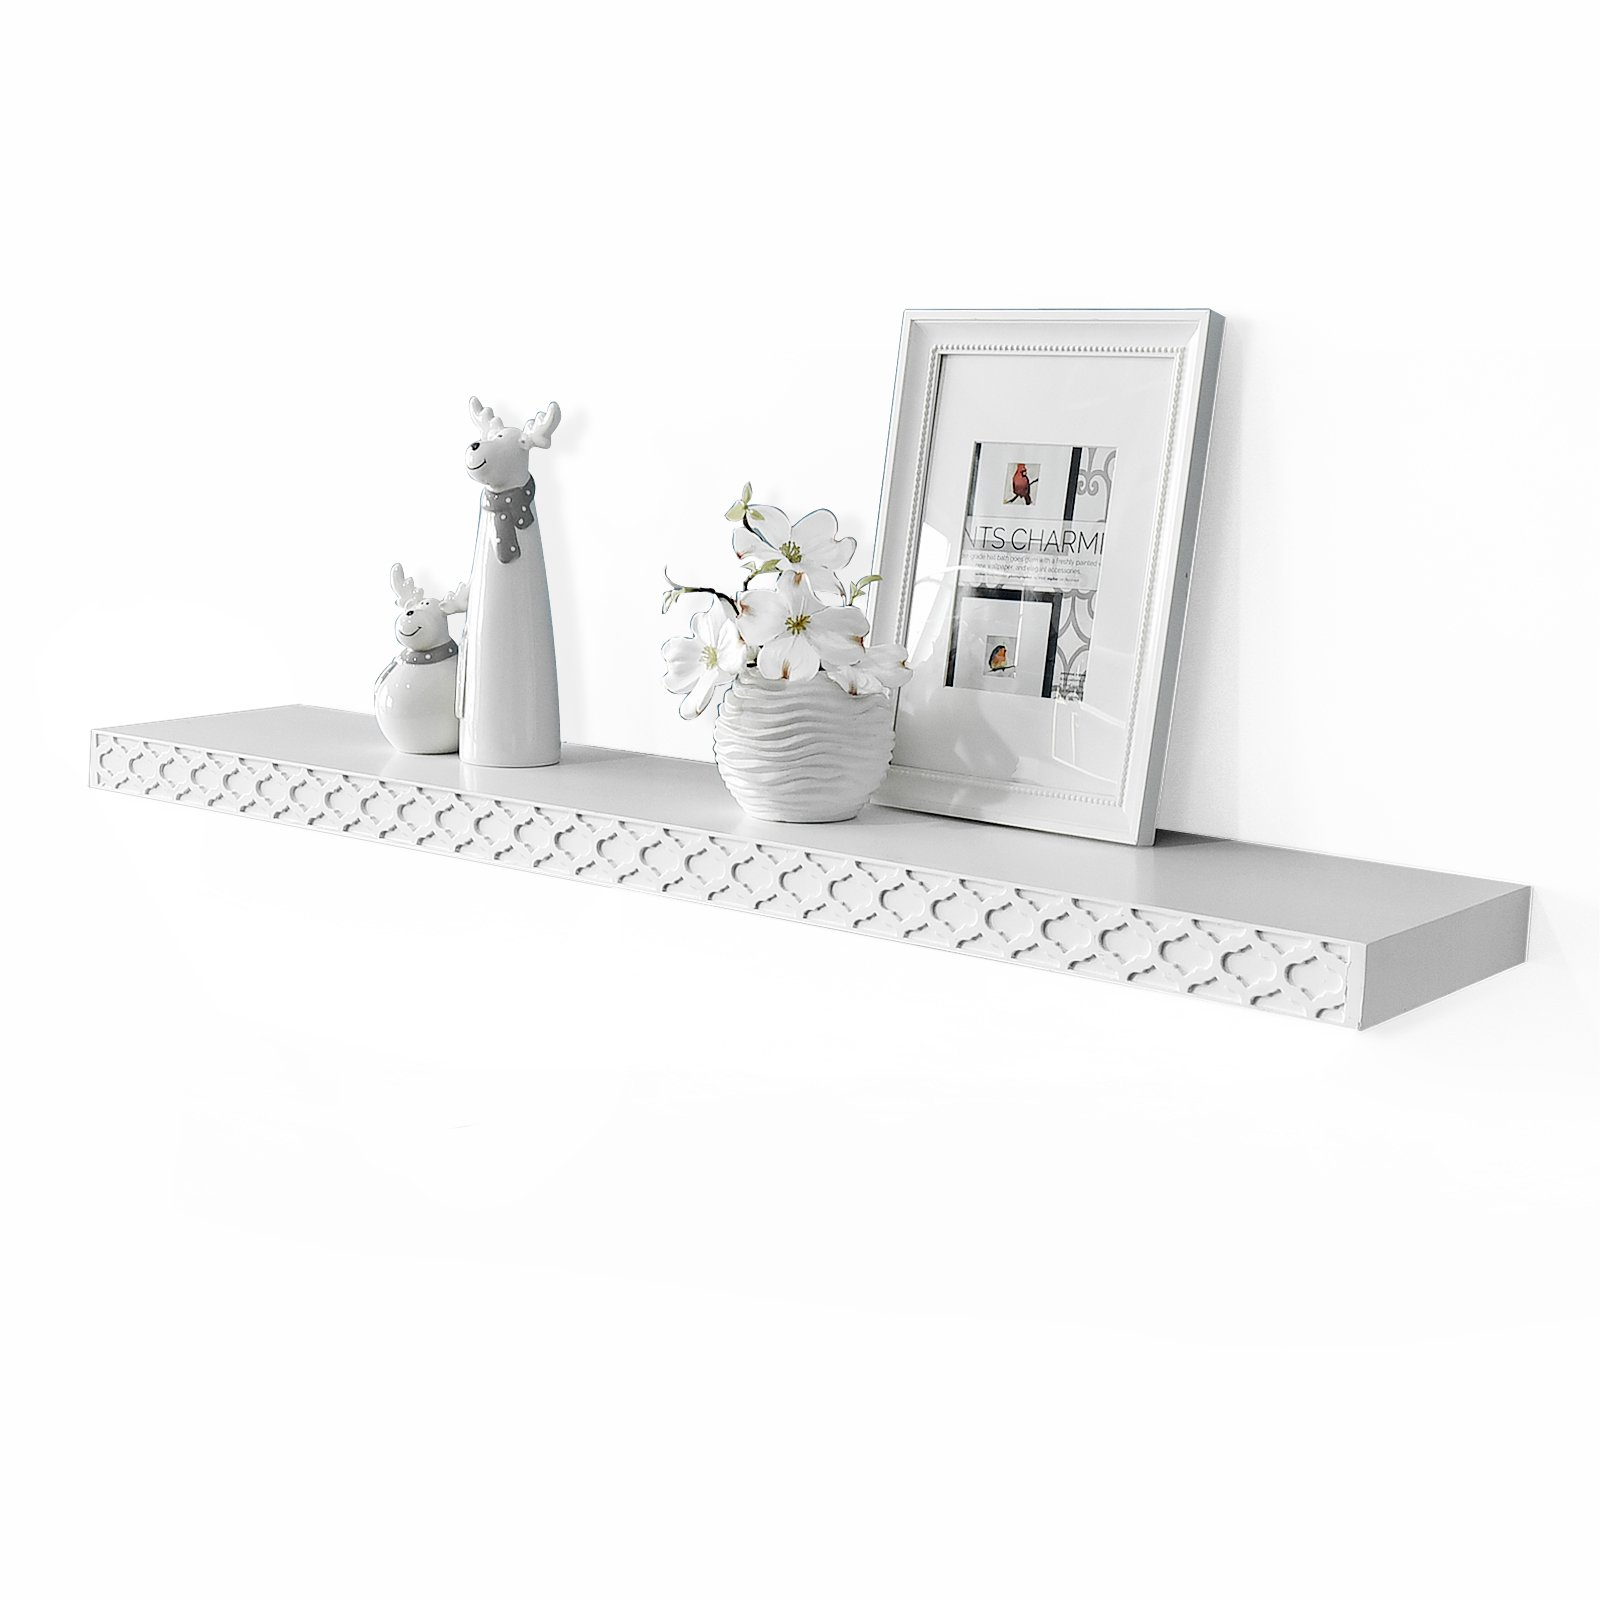 WELLAND 36 inch Carving Pattern Wooden Floating Shelves, Picture Display Floating Wall Shelf Ledge Shelf (White, 36 inch)